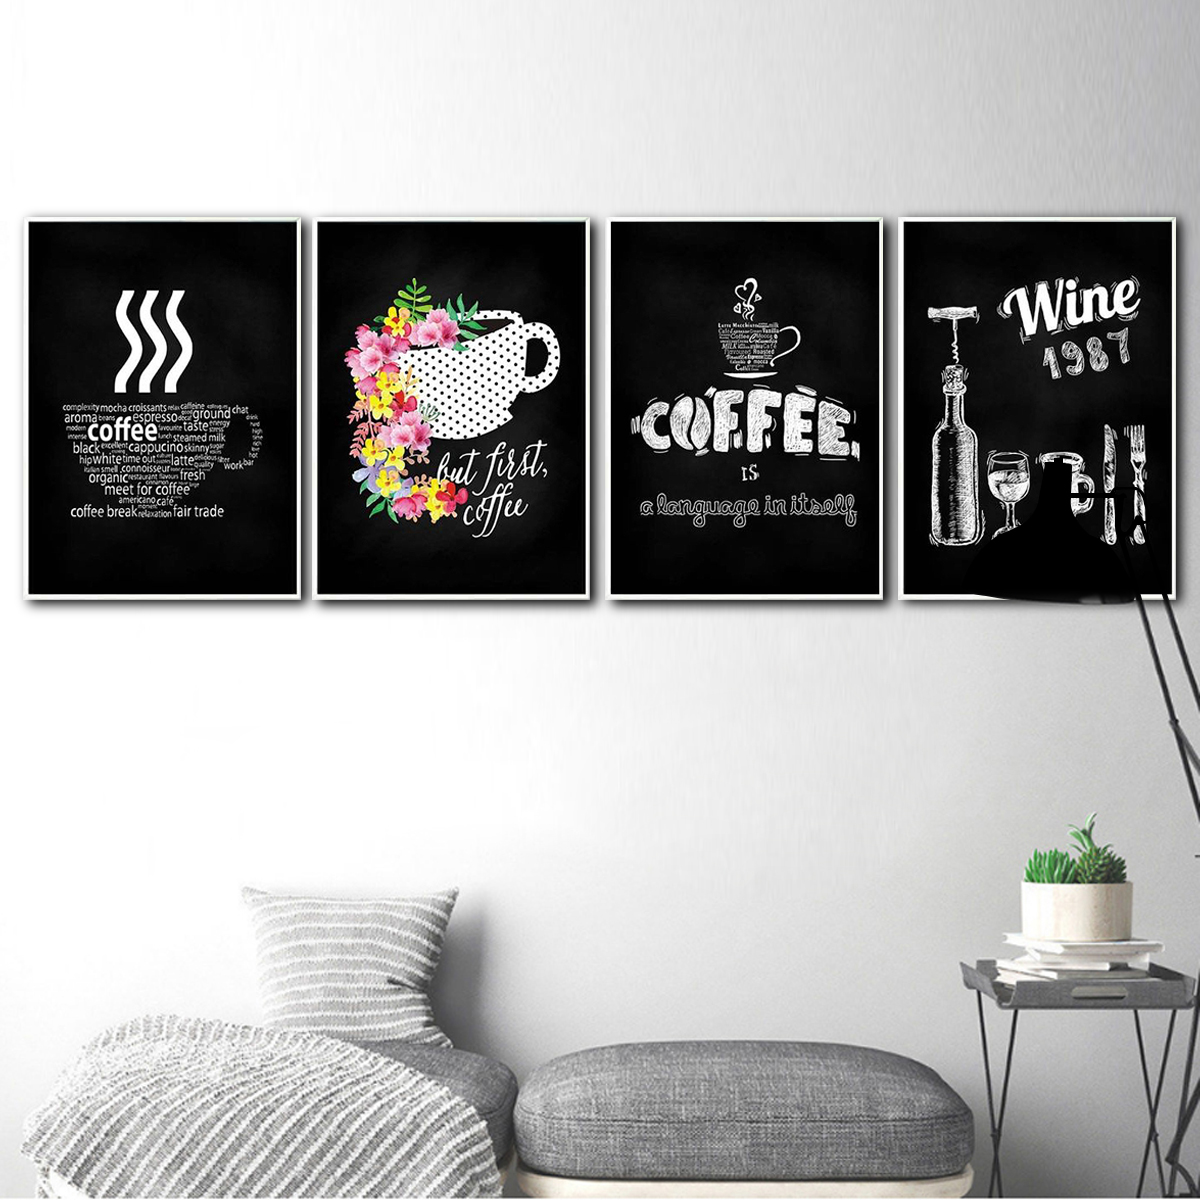 Details About Canvas Wine Coffee Painting Bar Cafe Kitchen Wall Decoration Poster Frameless